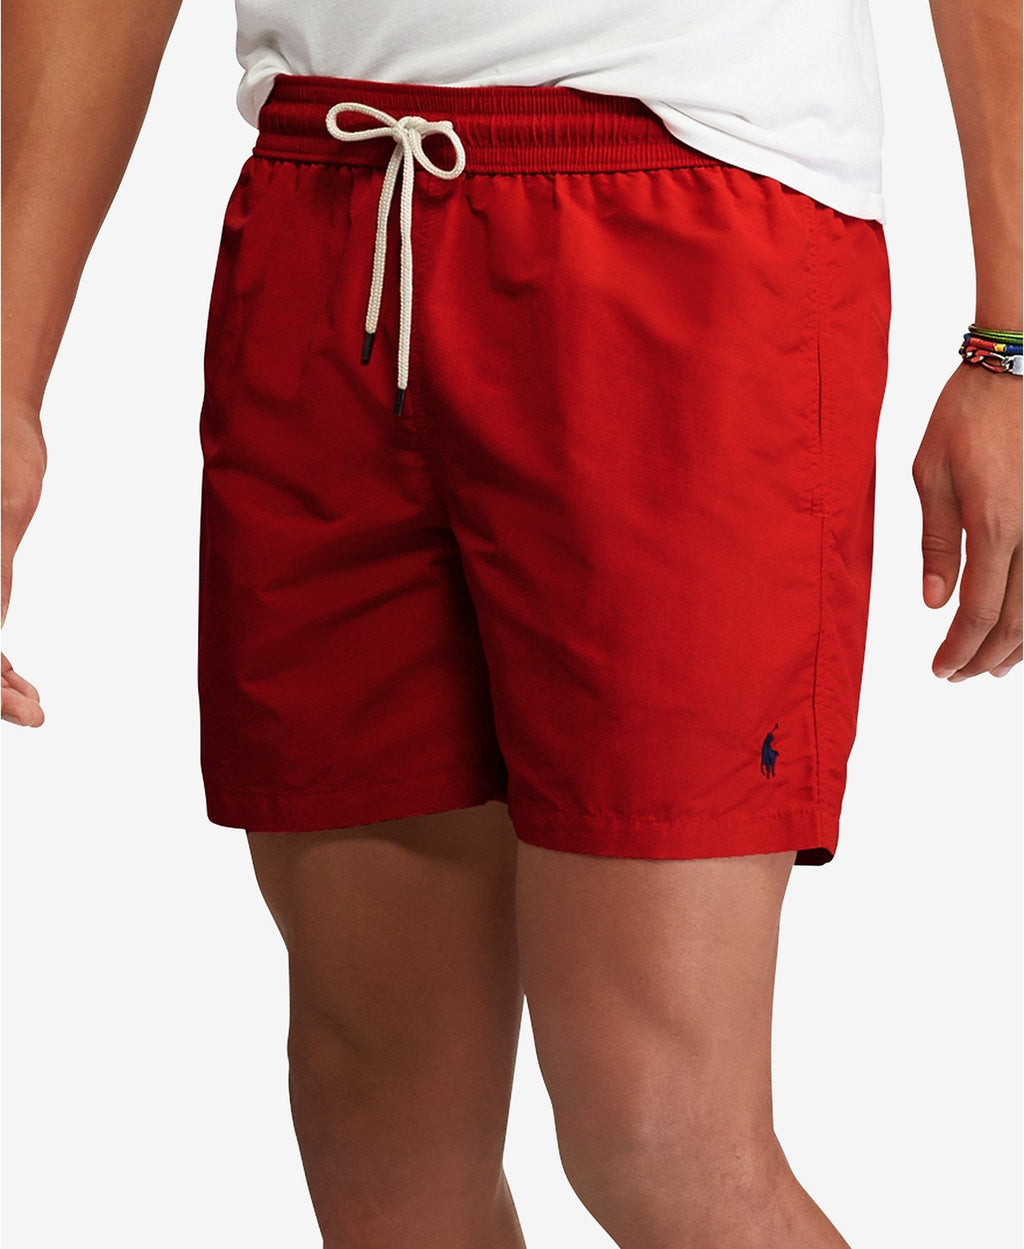 POLO RALPH LAUREN TRAVELER SWIM TRUNK - RL 2000 RED